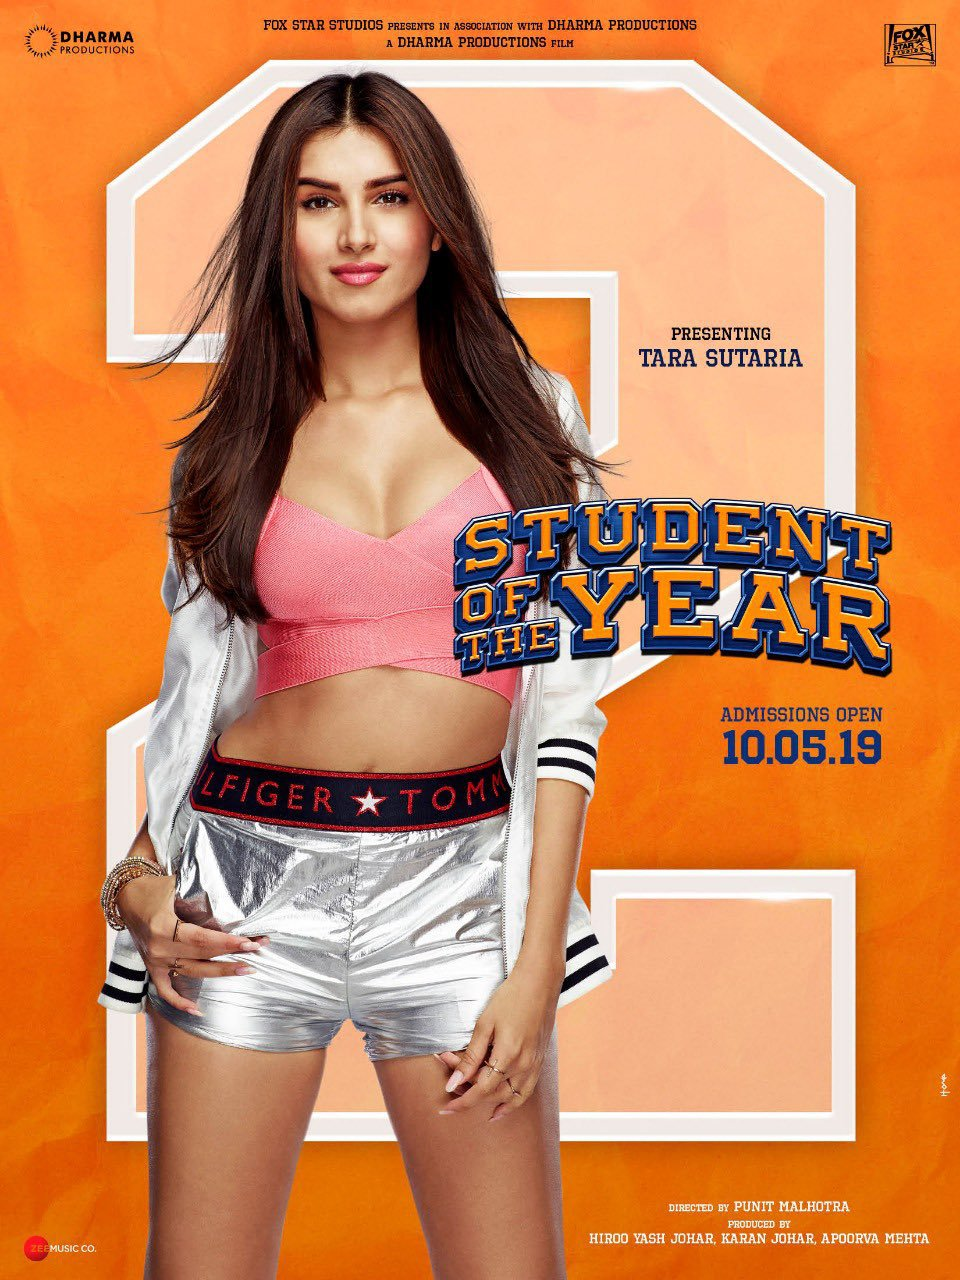 Student Of The Year 2 Tara Sutaria